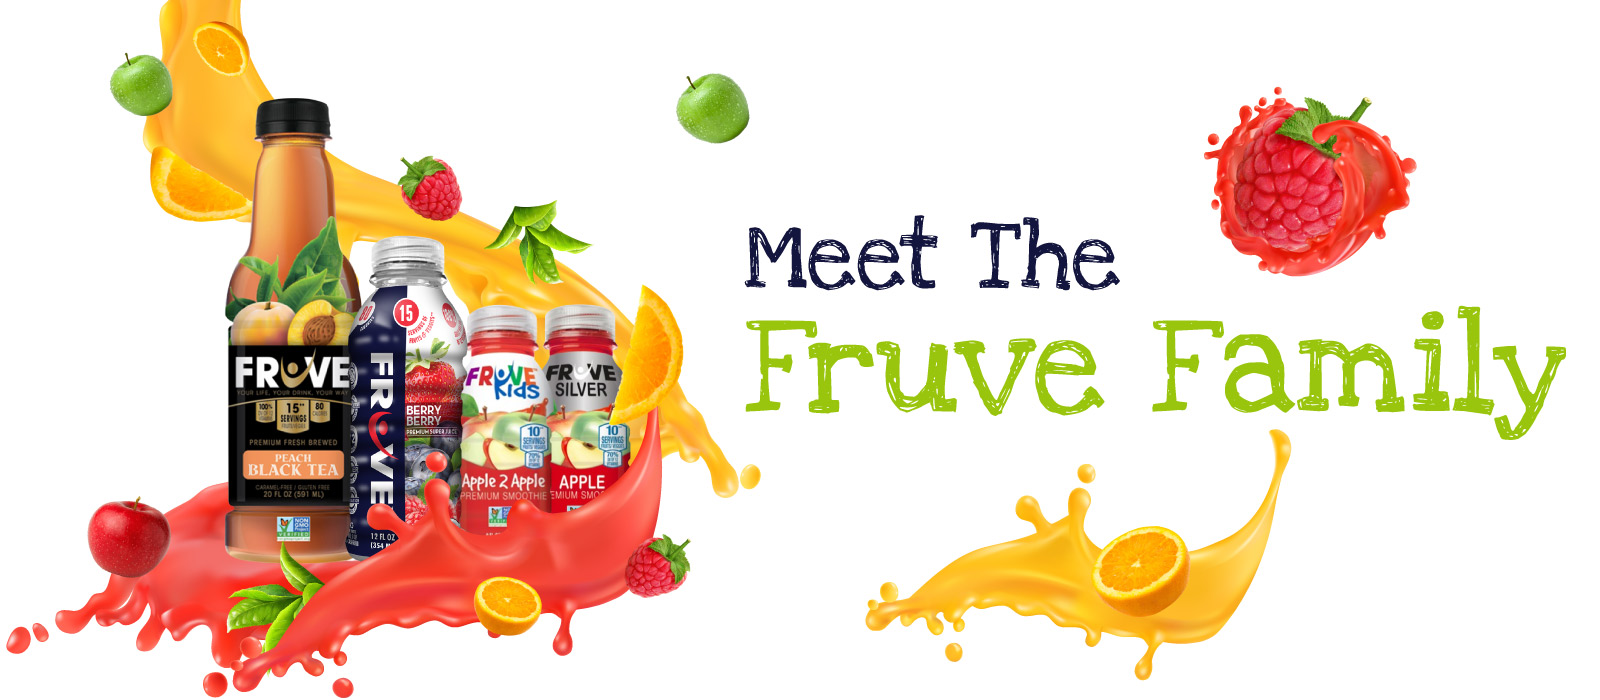 Fruve Fruits Juice | Product Page Banner | Fruve Family